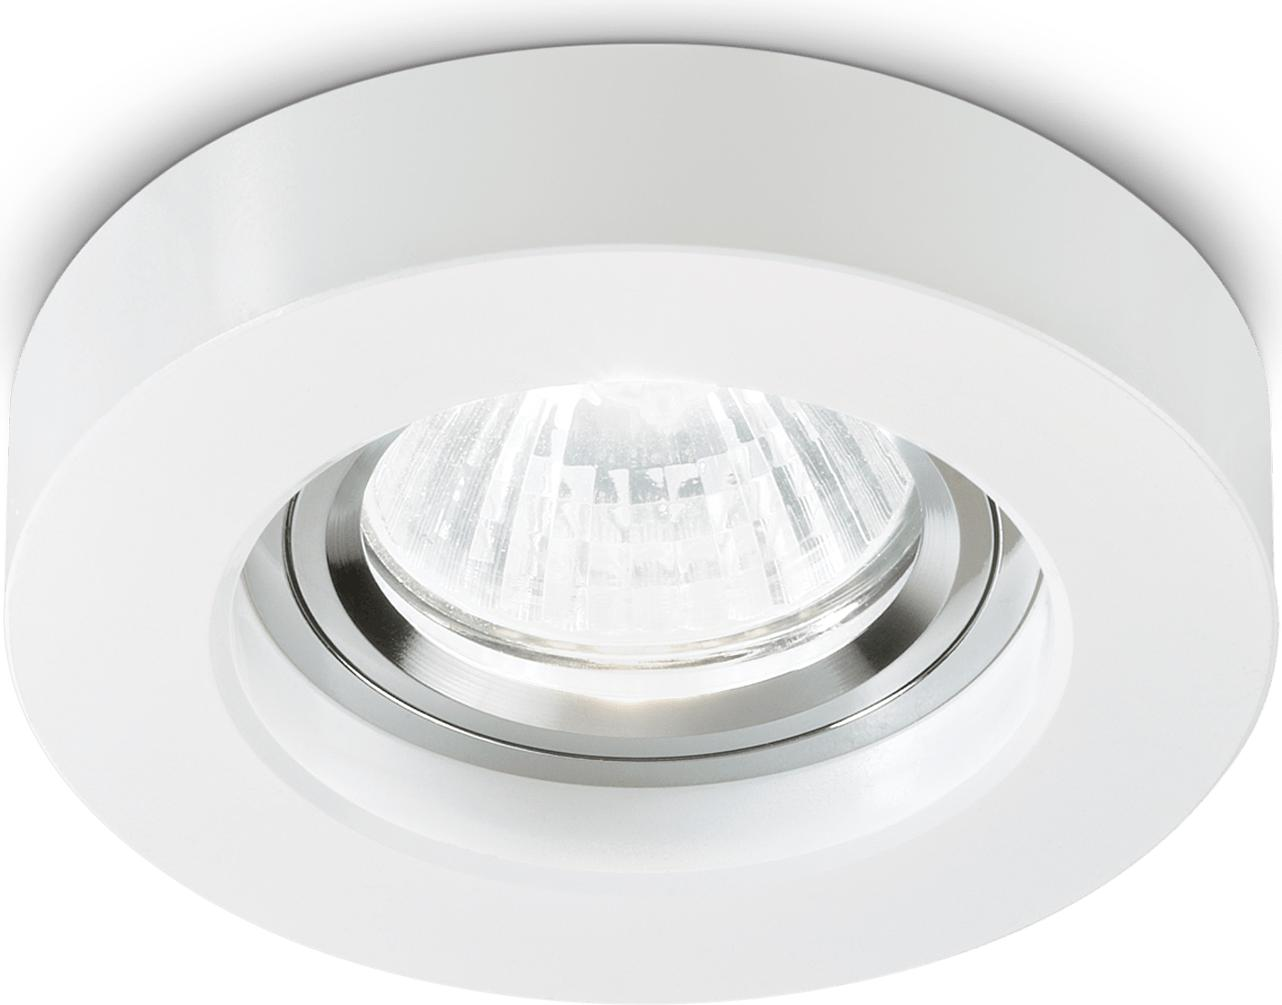 Ideal lux LED blues fi1 bianco vertieft Leuchte 5W 113999